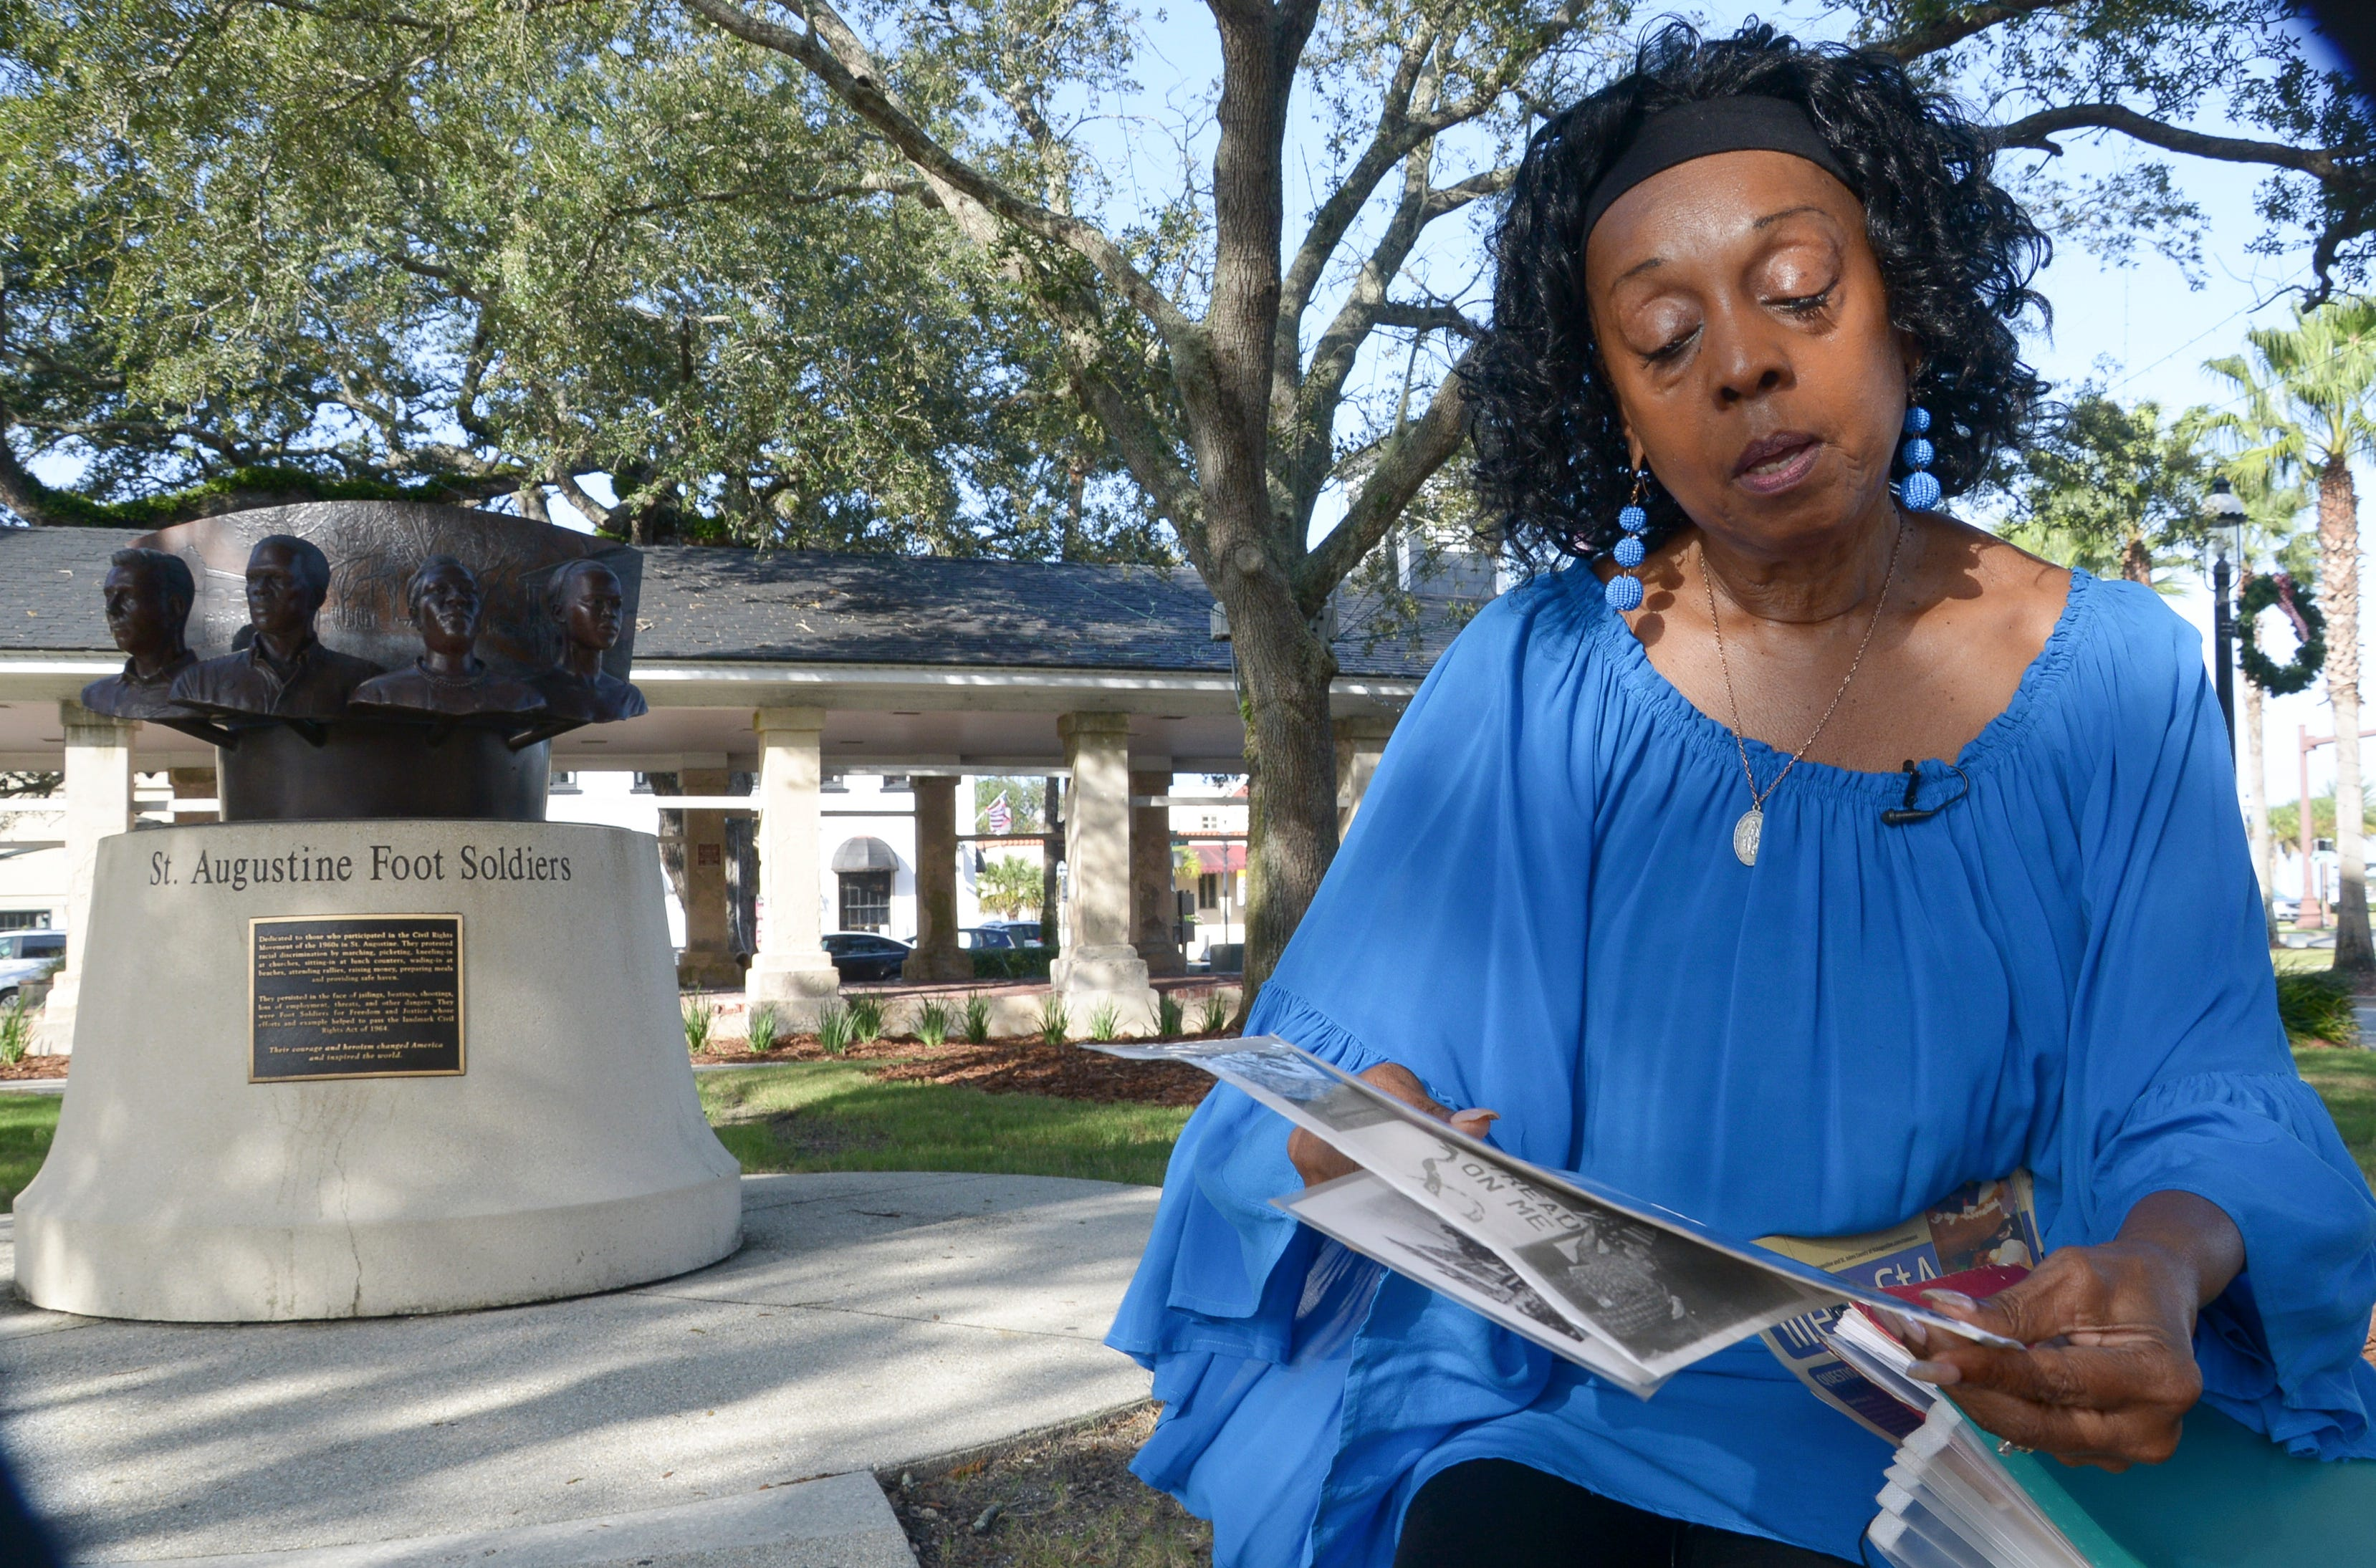 Bernadette Reeves holds photos during the civil rights era marches in St. Augustine as she talks about life in the city. Behind her is the St. Augustine Foot Soldiers, a monument to the people who marched during that period in the 1960s. Behind that is an open pavilion known as The Slave Market.